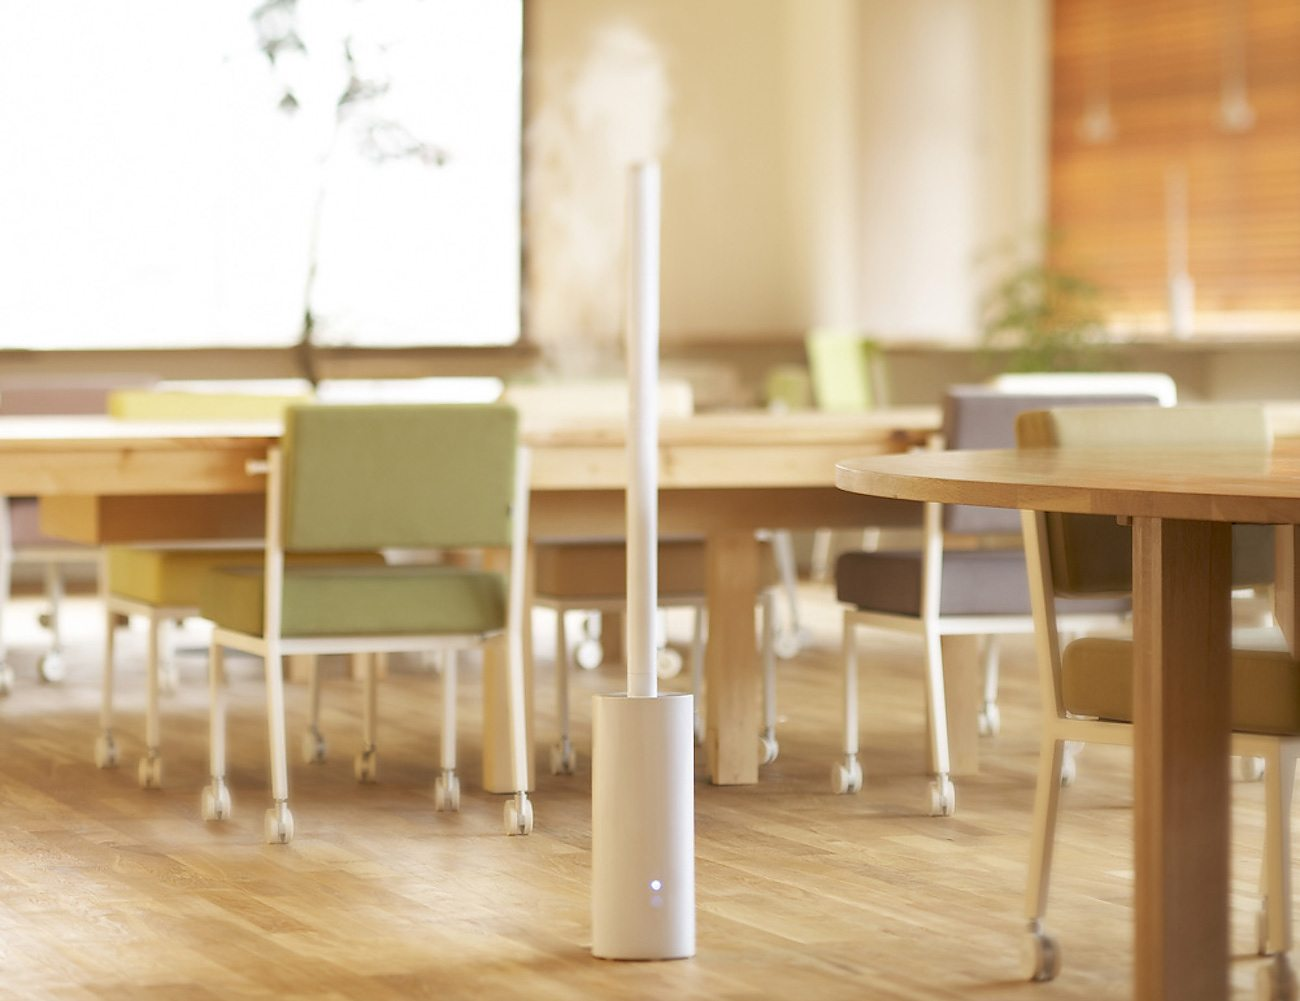 Chimney Humidifier by Leibal